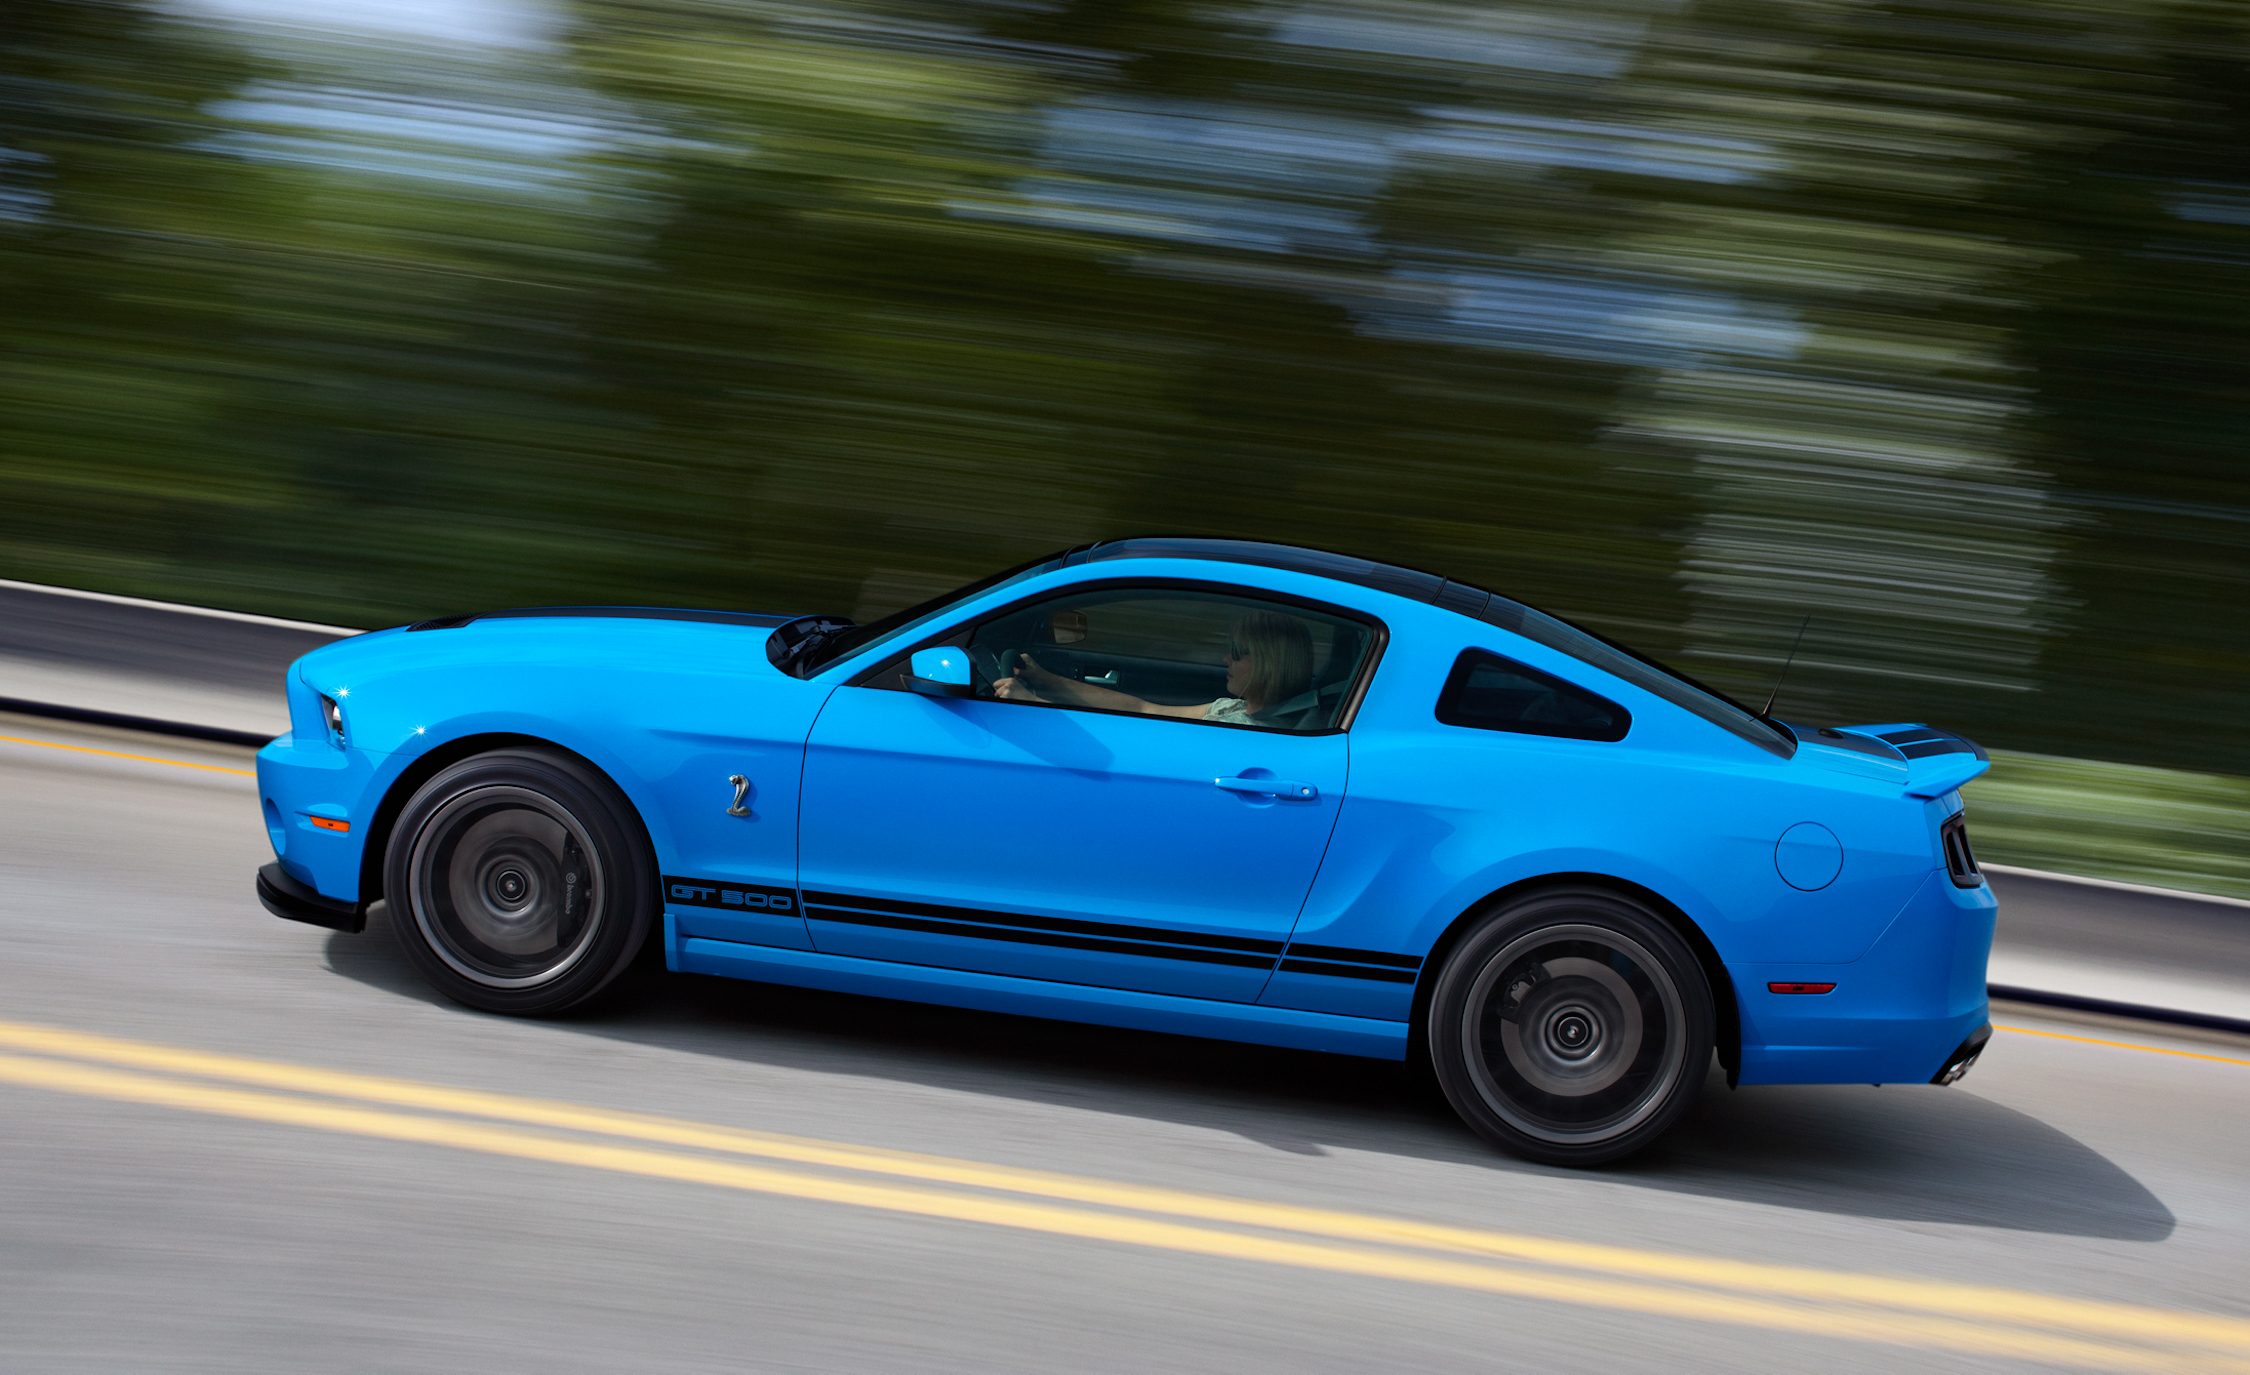 2013 Ford Mustang Shelby GT500 Blue Test Drive Side View (View 16 of 47)